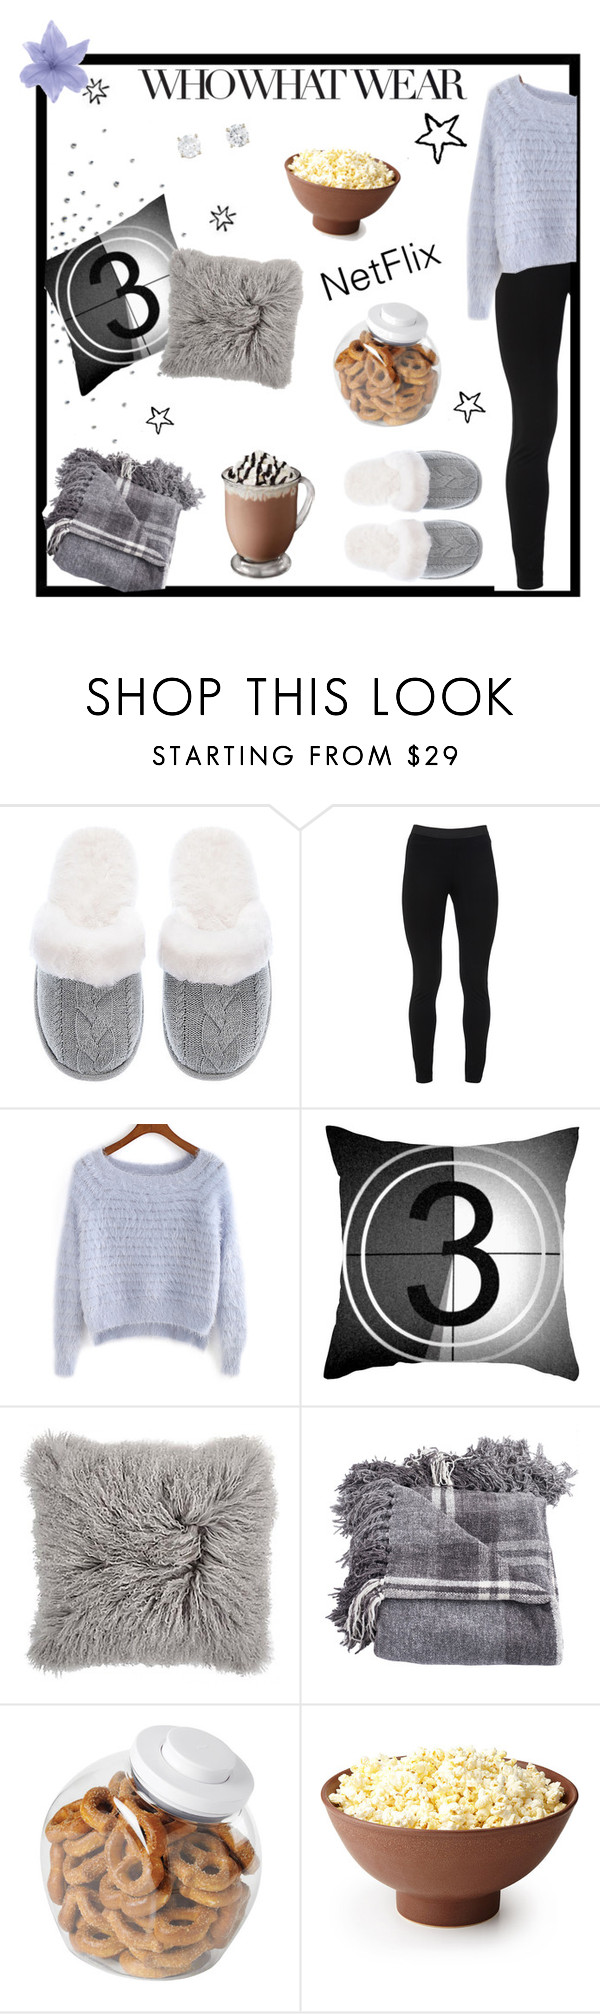 """""""Its to cold outside tonight!!"""" by abbes03 ❤ liked on Polyvore featuring Who What Wear, Victoria's Secret, Peace of Cloth, Dot & Bo and OXO"""